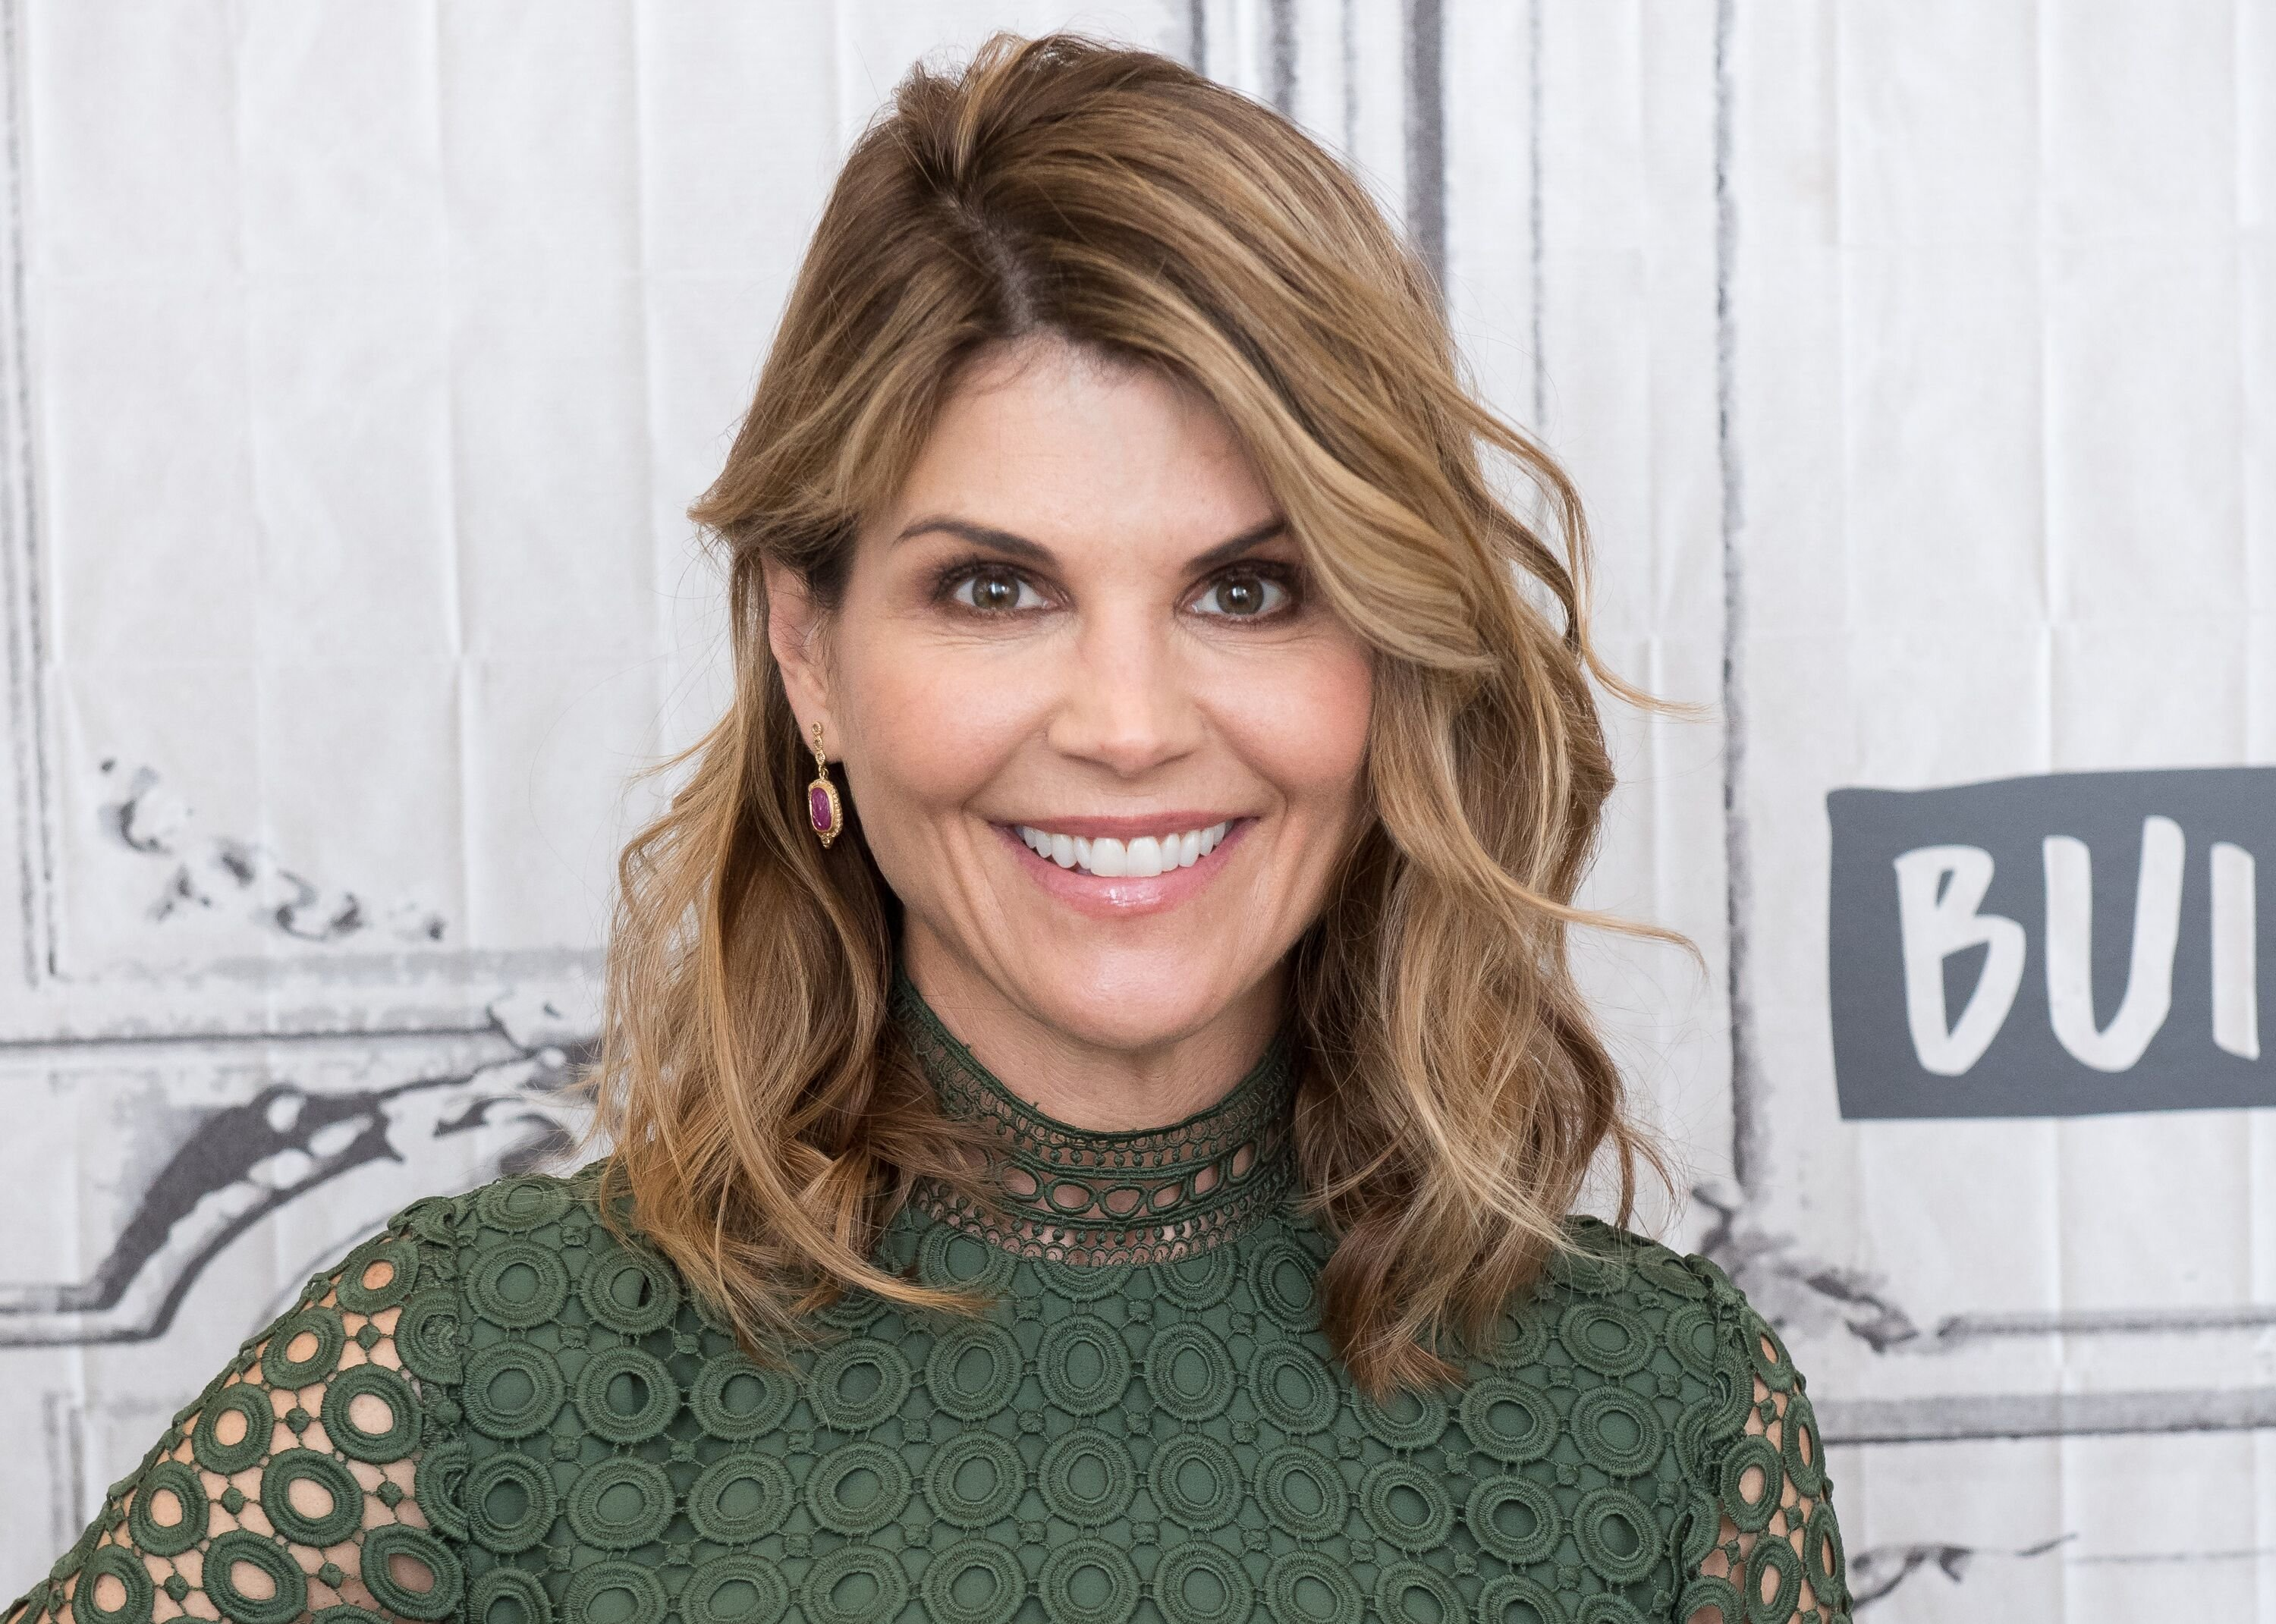 Lori Loughlin at Build Studio on February 15, 2018, in New York City | Photo: Mike Pont/Getty Images